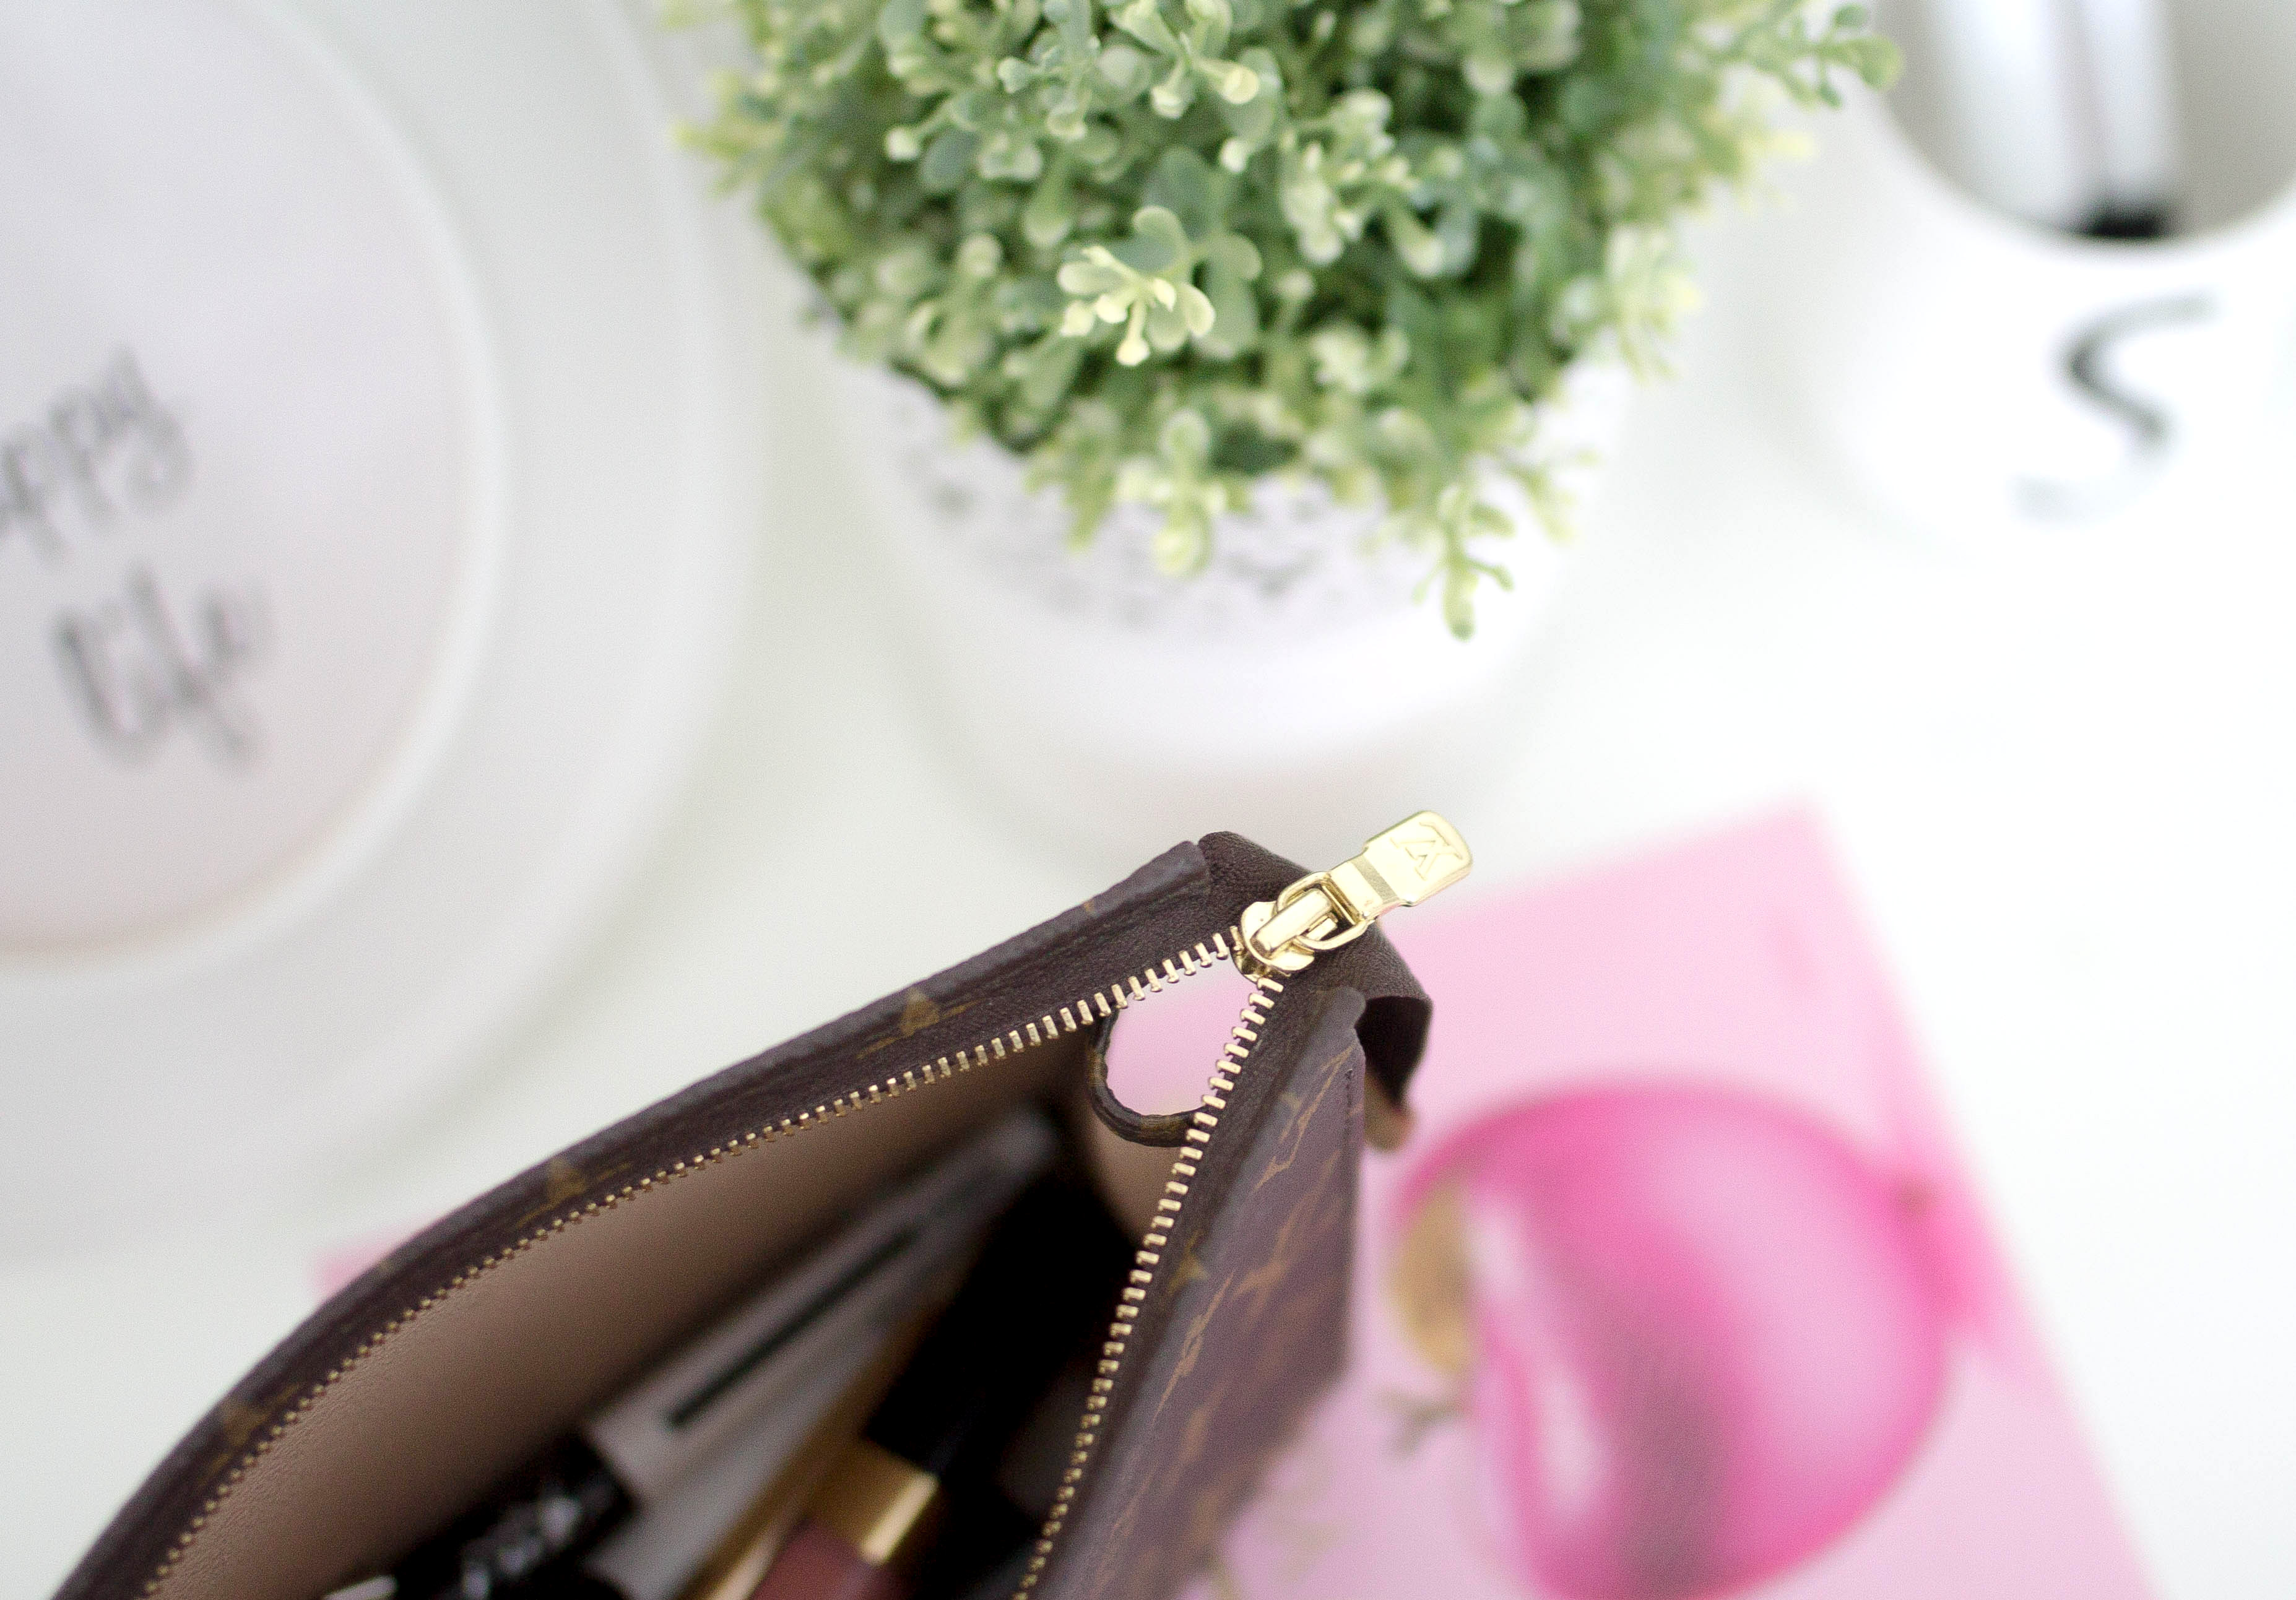 lv cosmetics pouch